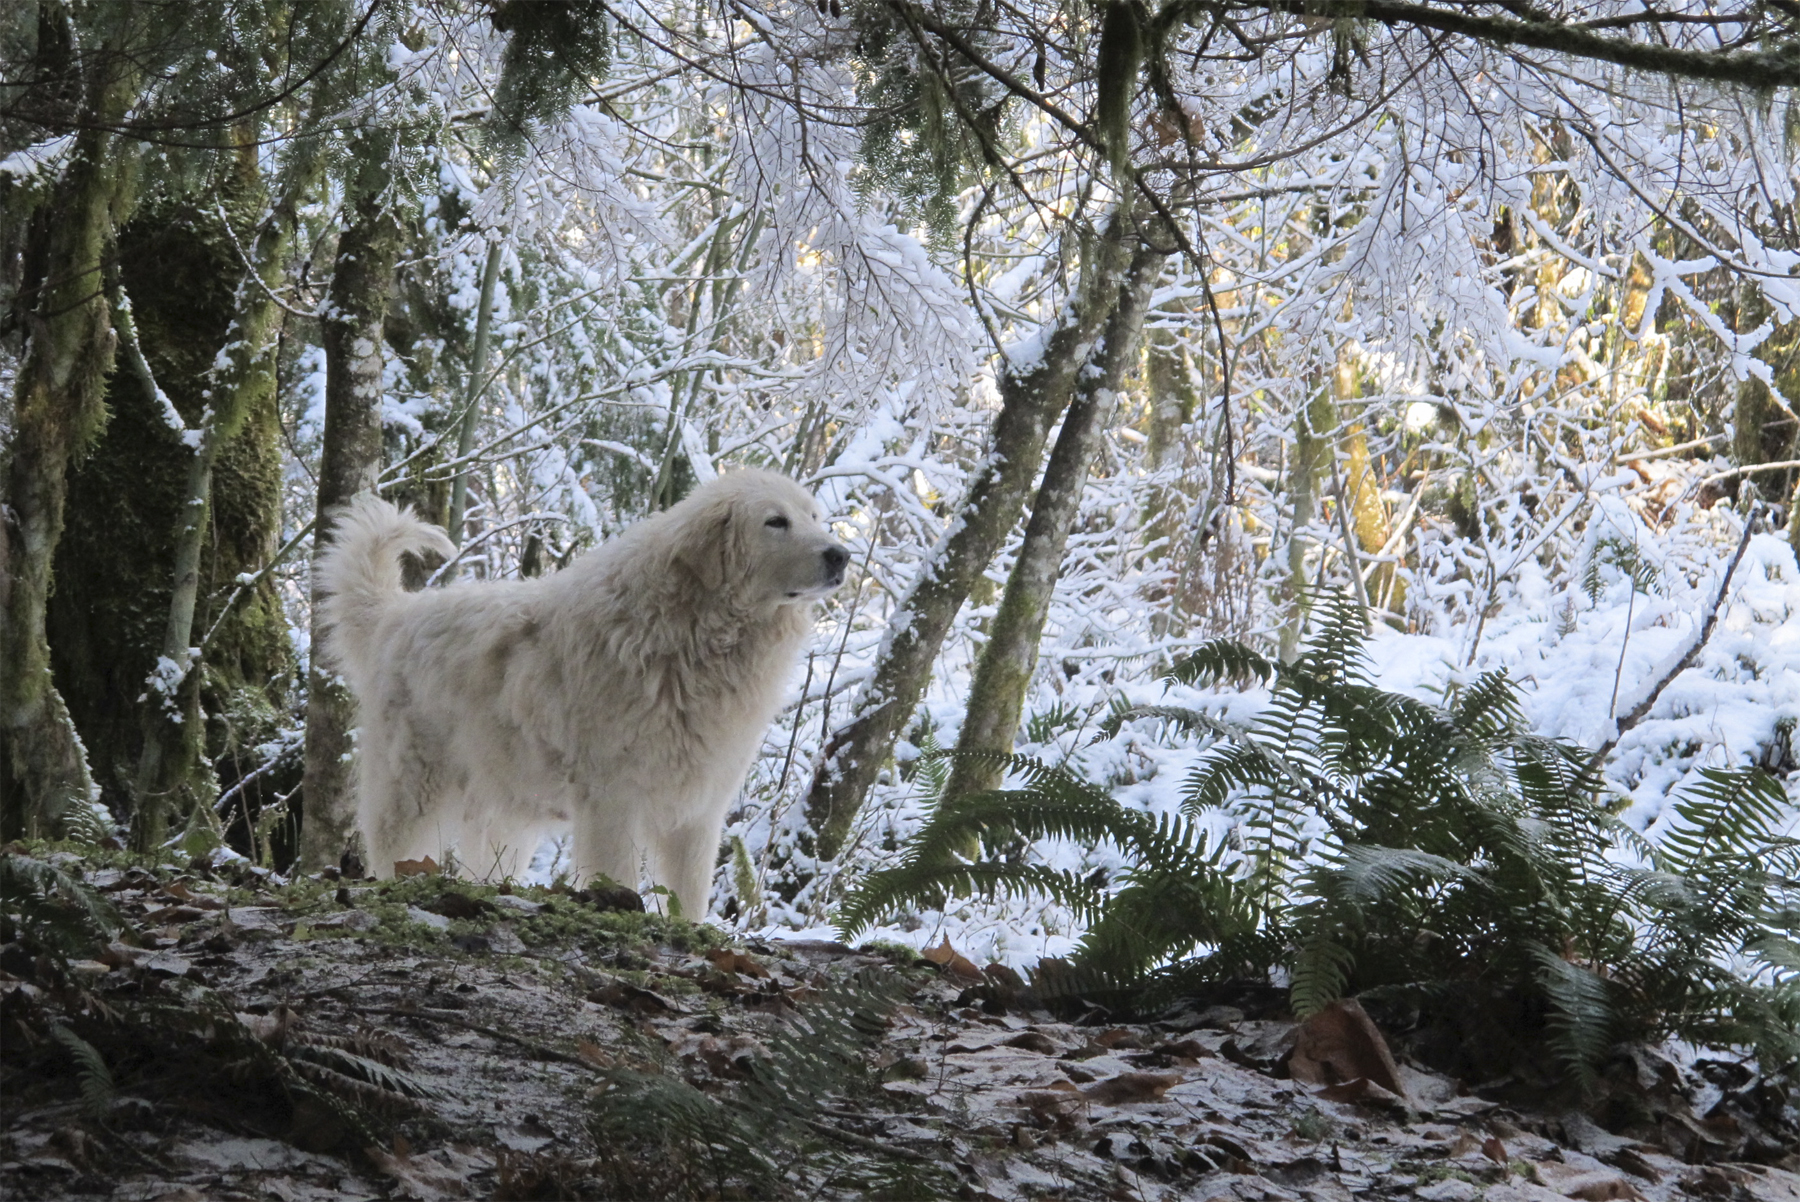 Livestock Guard Dog in winter forest at Brookfield Farm Bees and Honey, Maple Falls, WA